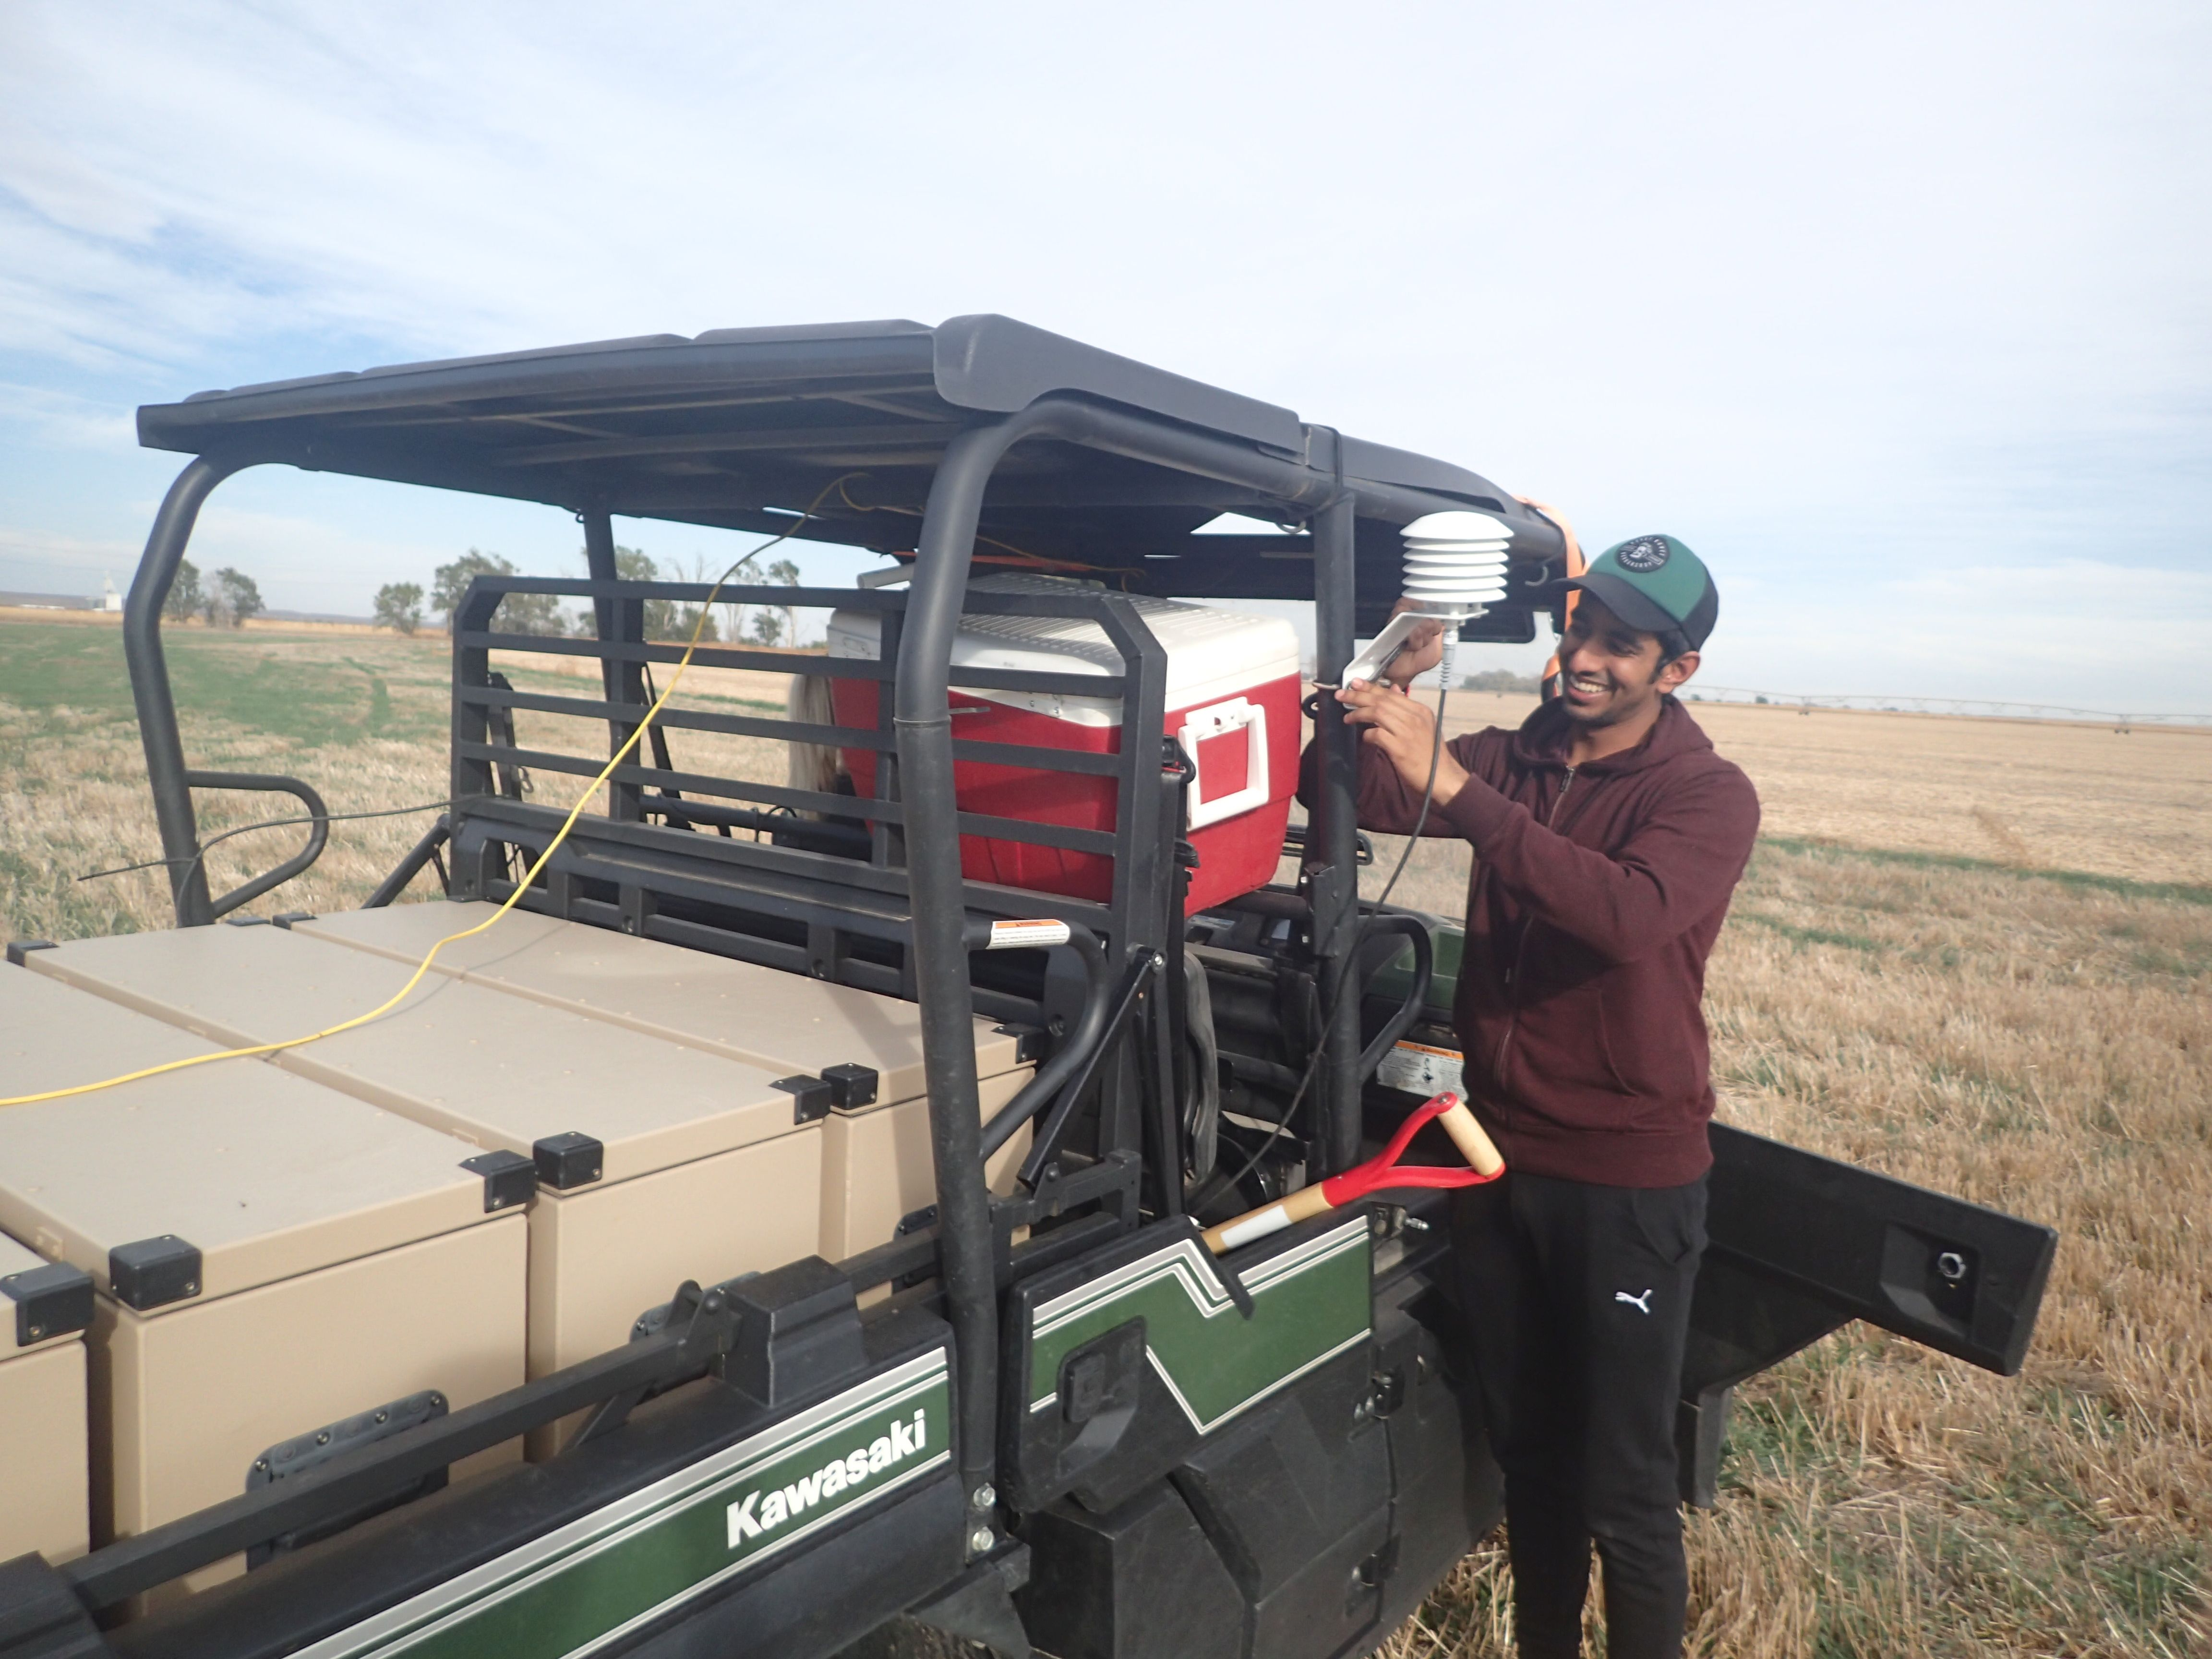 Thigesh Vather, a visiting doctoral student from the University of KwaZulu-Natal in South Africa, conducted agricultural research using the cosmic ray probe technology at the University of Nebraska of Nebraska.